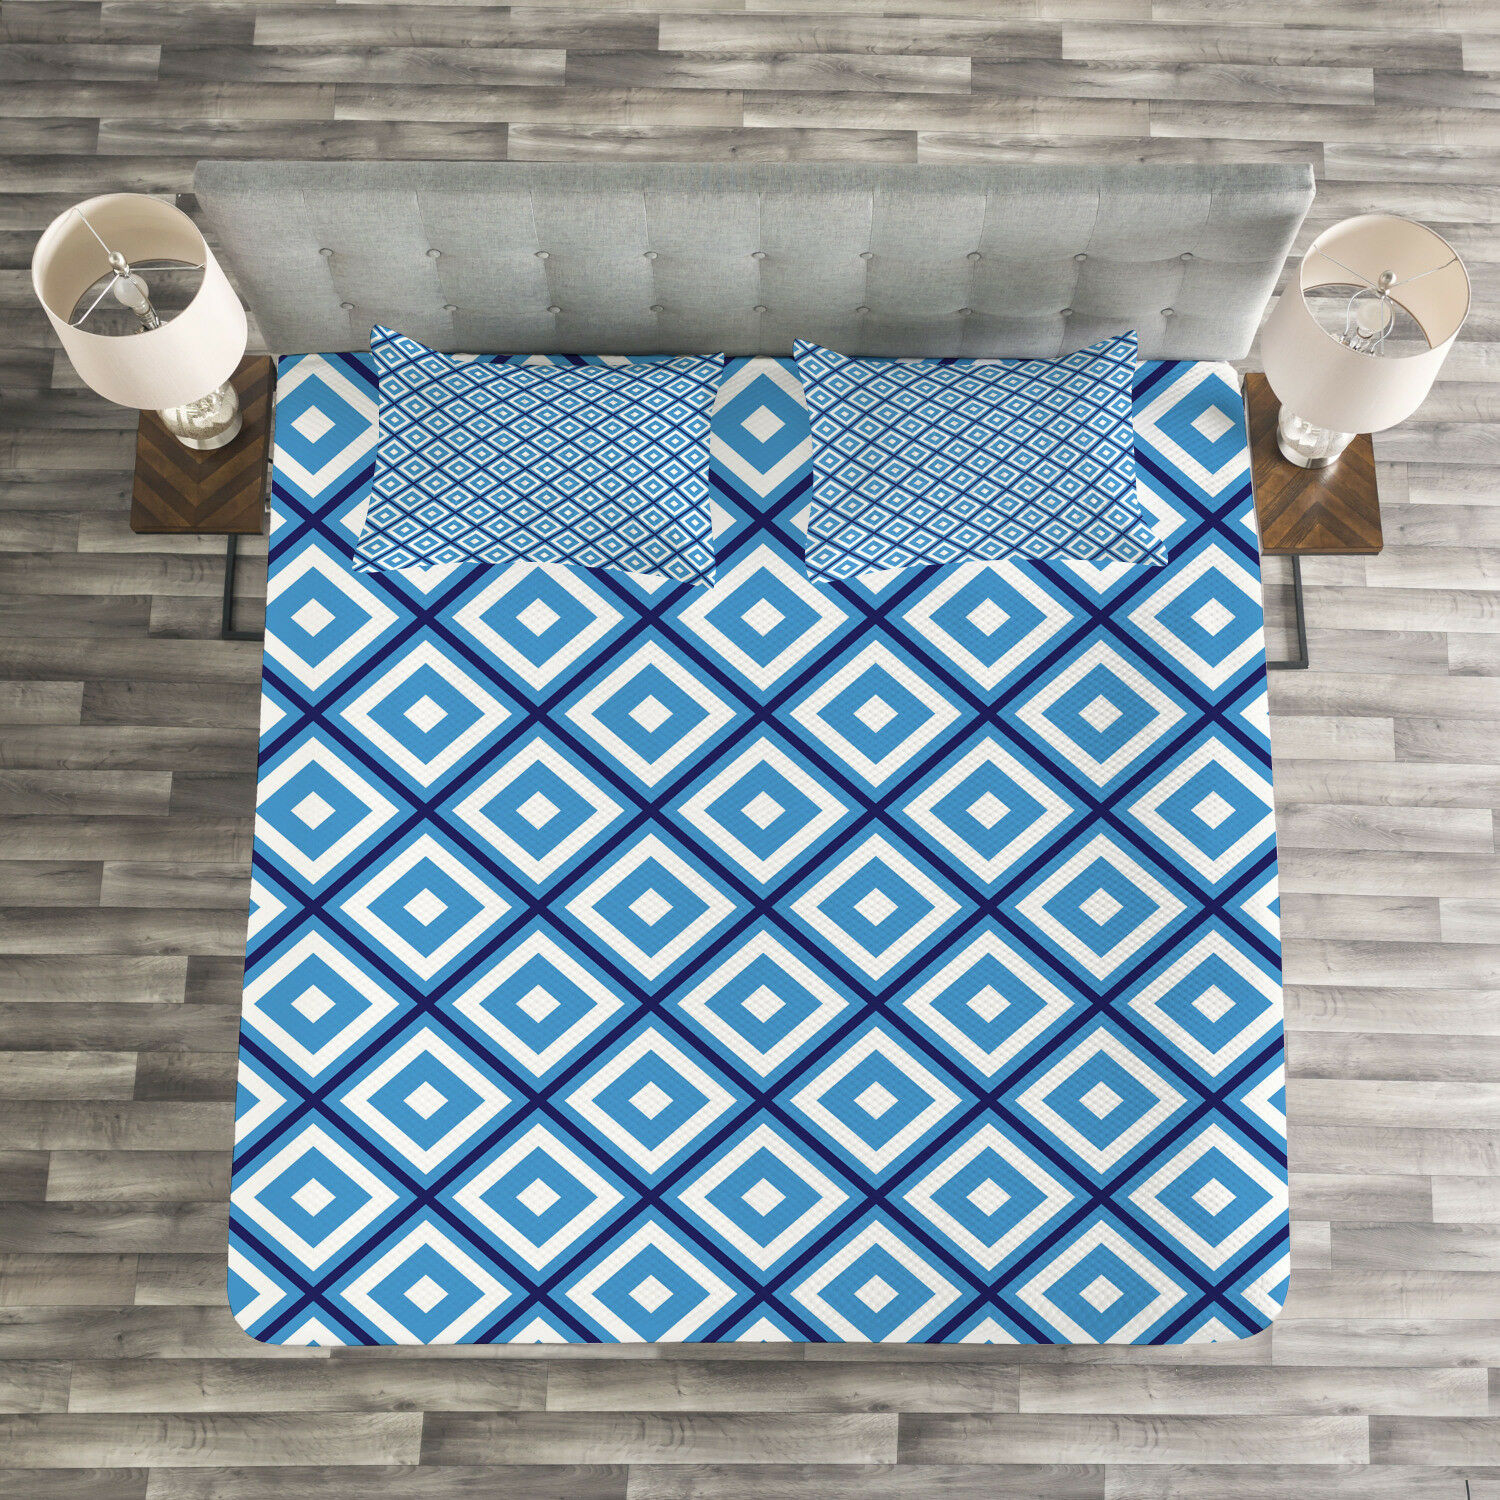 Abstract Quilted Bedspread & Pillow Shams Set, Geometric Diamond Form Print